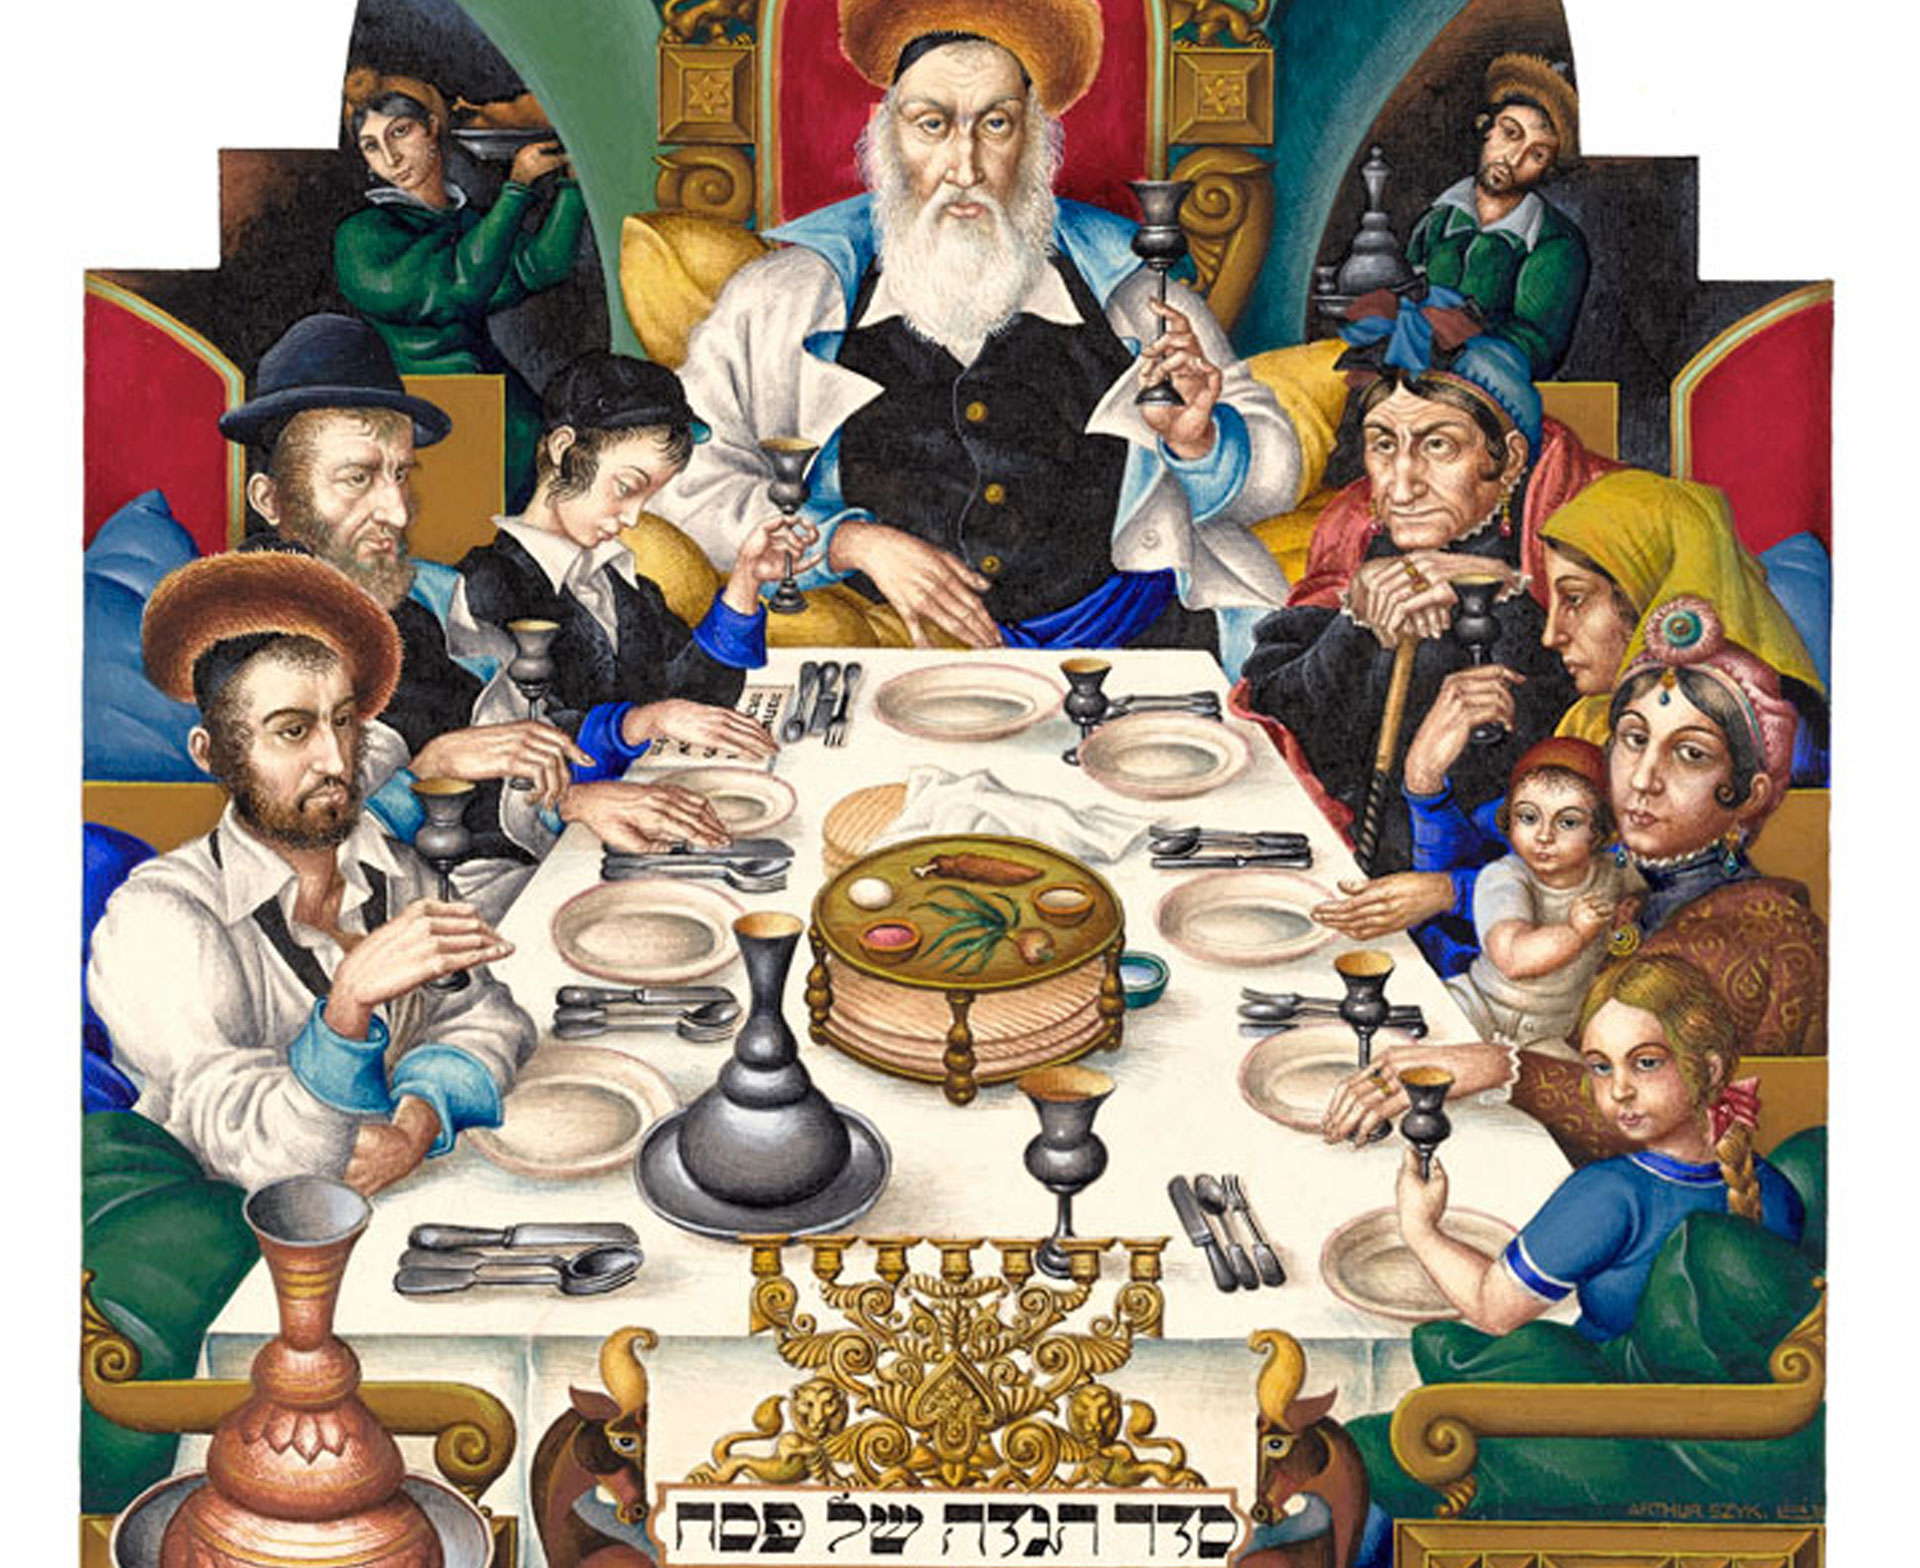 A page from the classic 1940 Haggadah made by Polish artist Arthur Szyk.